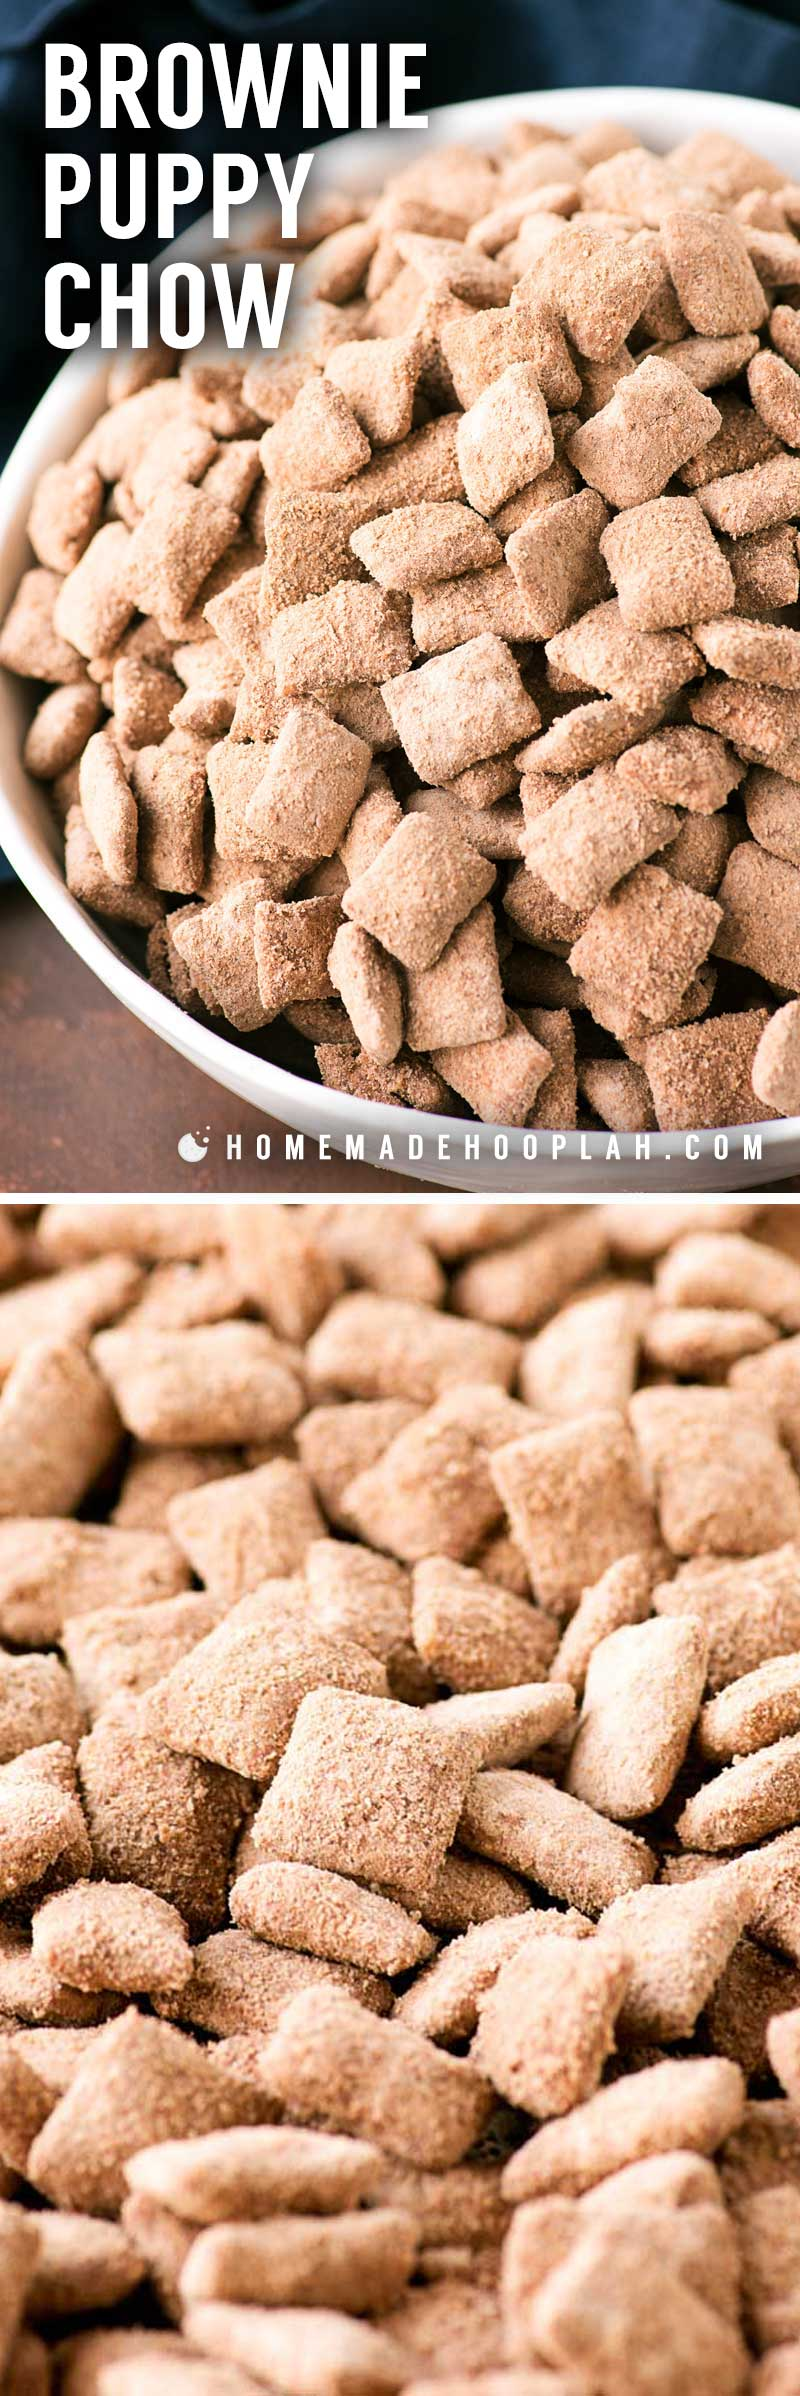 Brownie Puppy Chow! Whether you call them puppy chow or muddy buddies, you're sure to love this bakery makeover of the classic crunchy & sweet snack with rich brownie flavor.   HomemadeHooplah.com